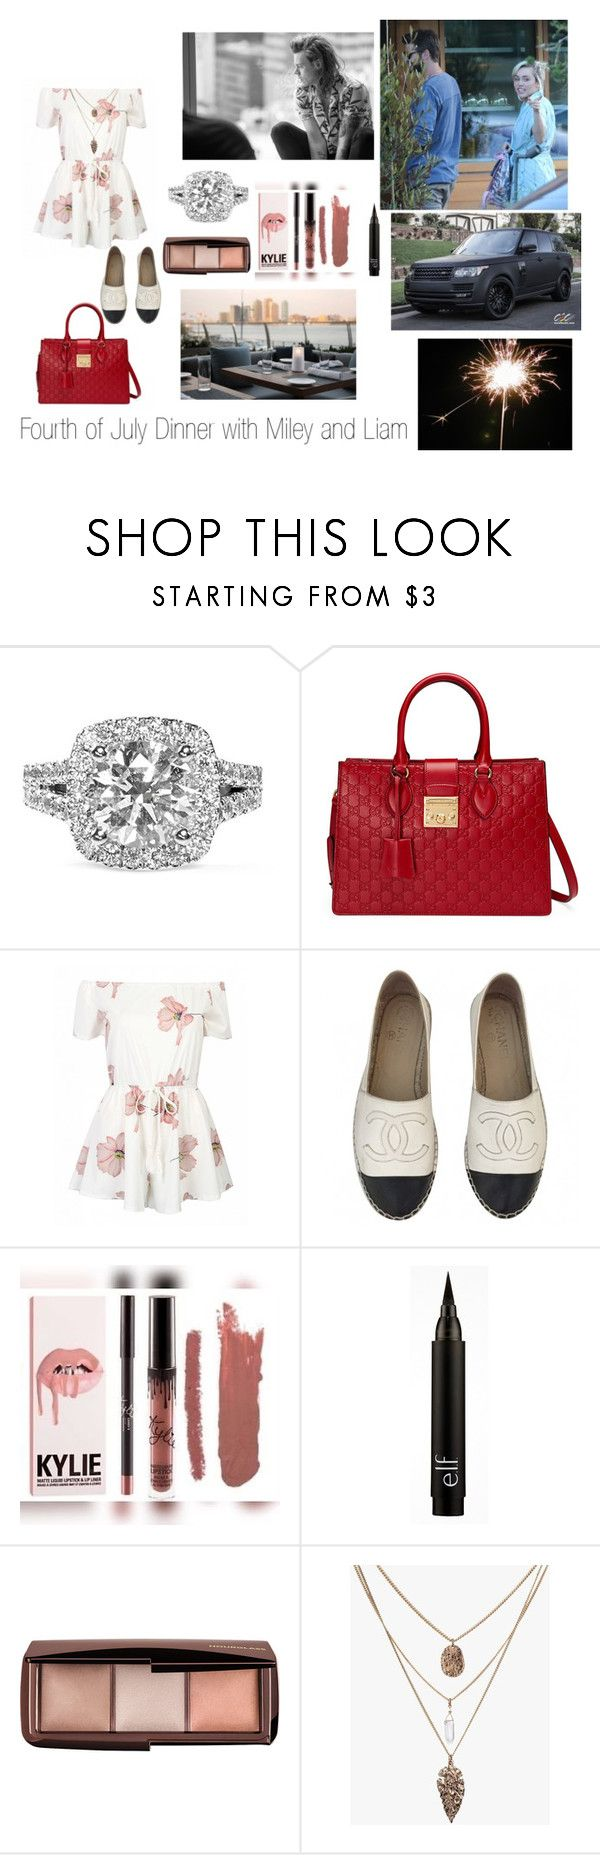 """""""4th of July Dinner Double Date with Your Boyfriend, Harry Styles"""" by madisonmilwardstyles ❤ liked on Polyvore featuring Vera Wang, Gucci, Chanel, Kylie Cosmetics and Hourglass Cosmetics"""